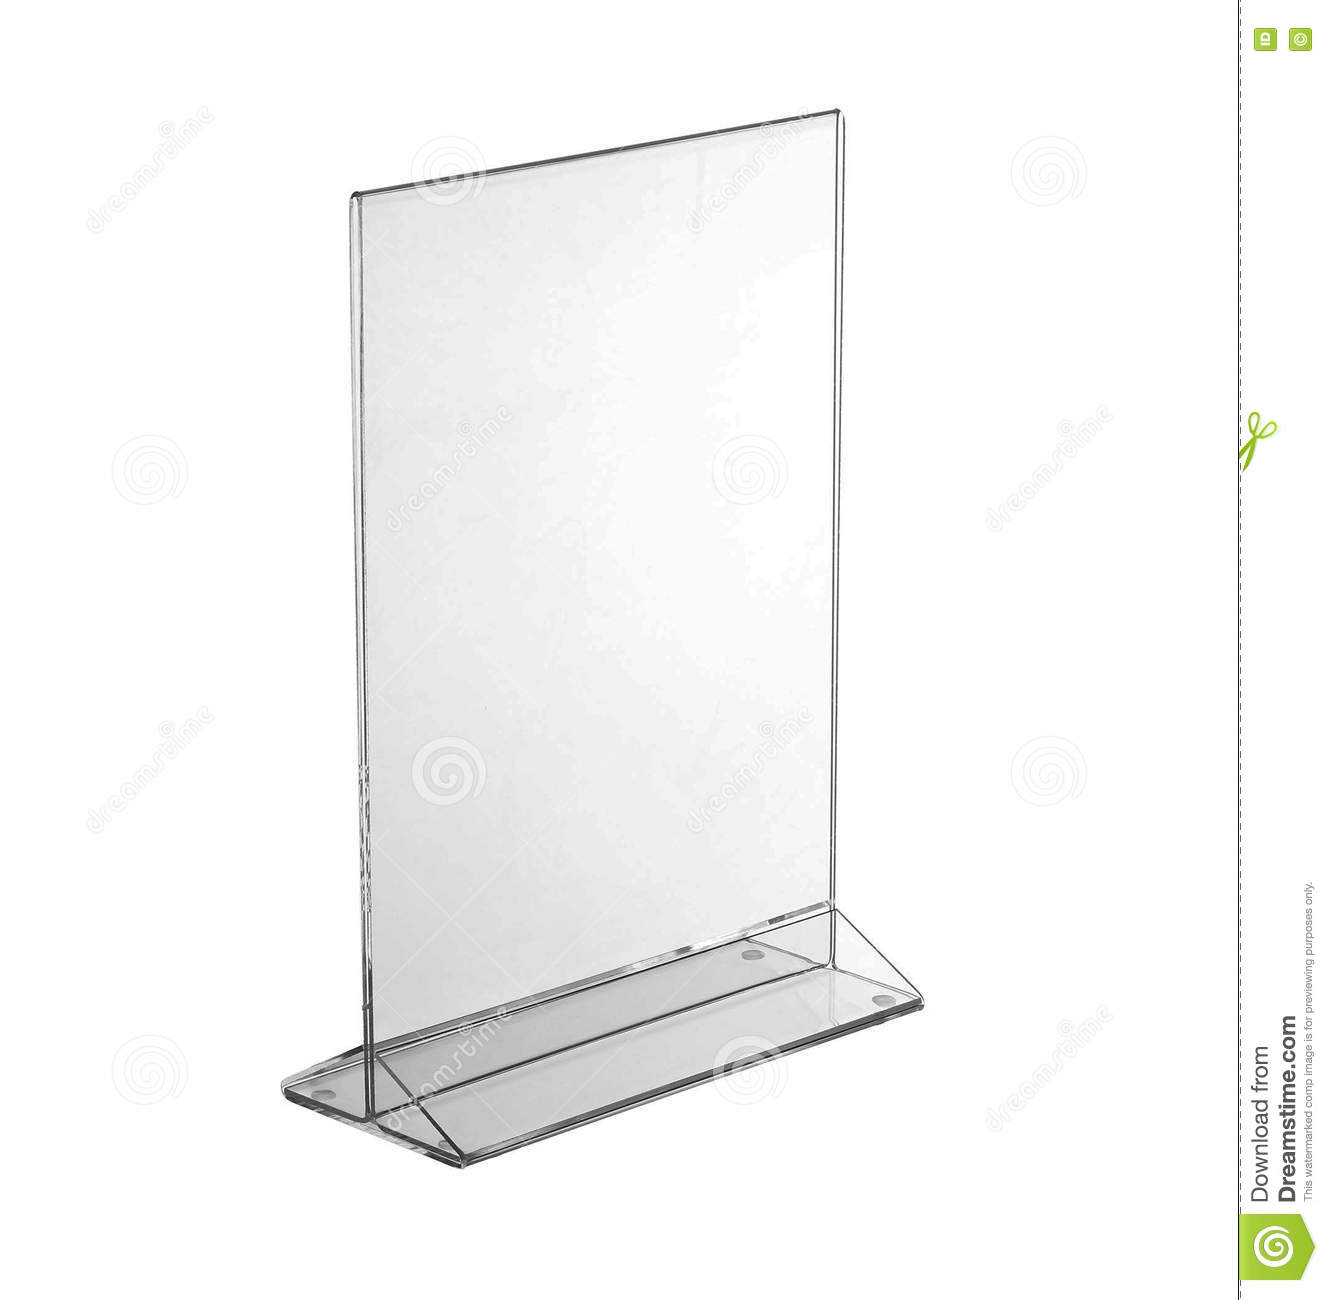 Table Transparente Plexiglass Transparent Acrylic Table Stand Display For Menu Isolated White